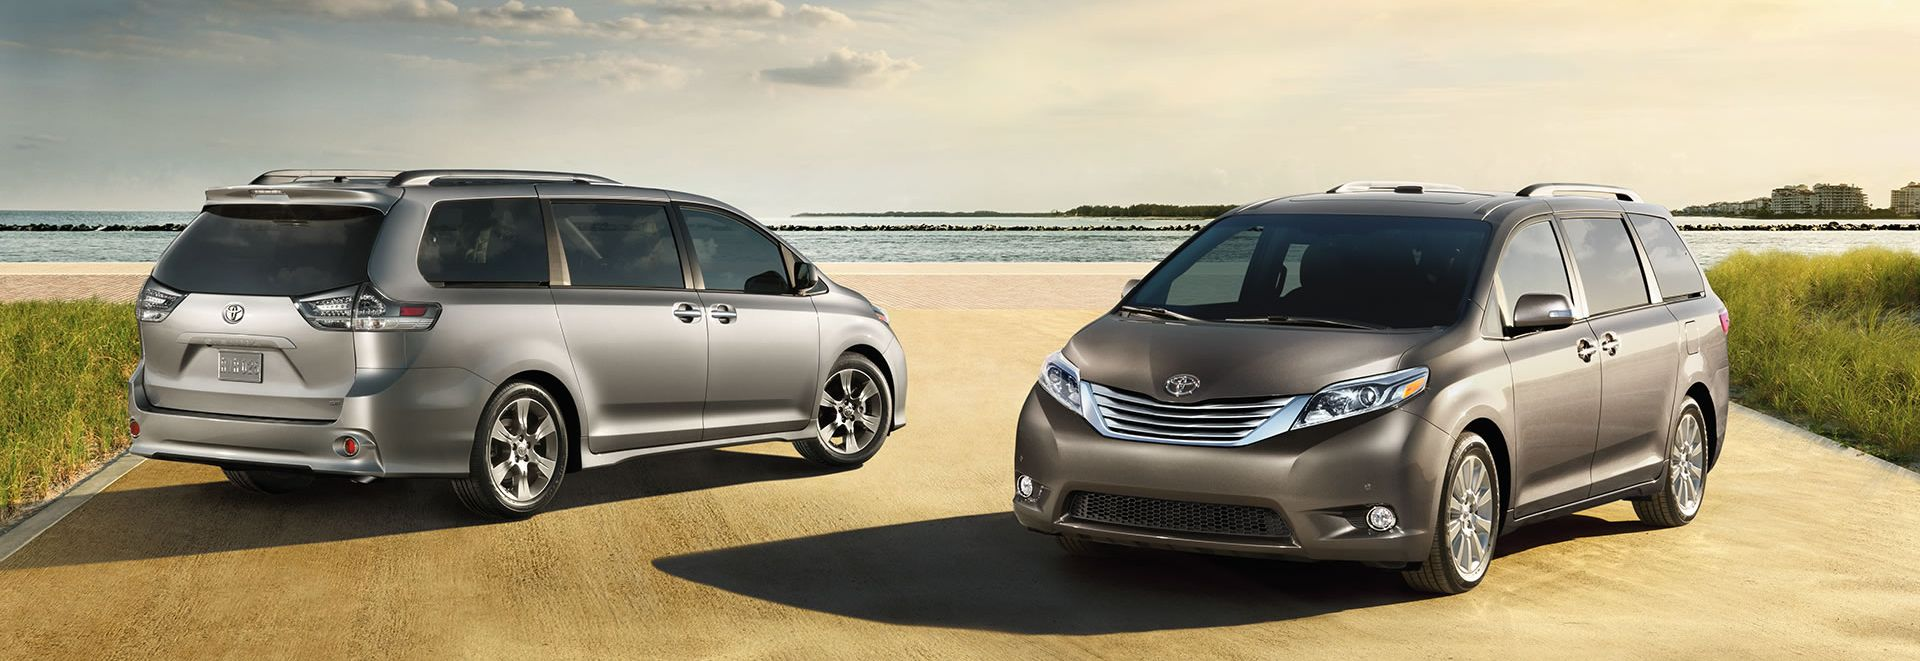 2017 toyota sienna for sale near greenwich ct